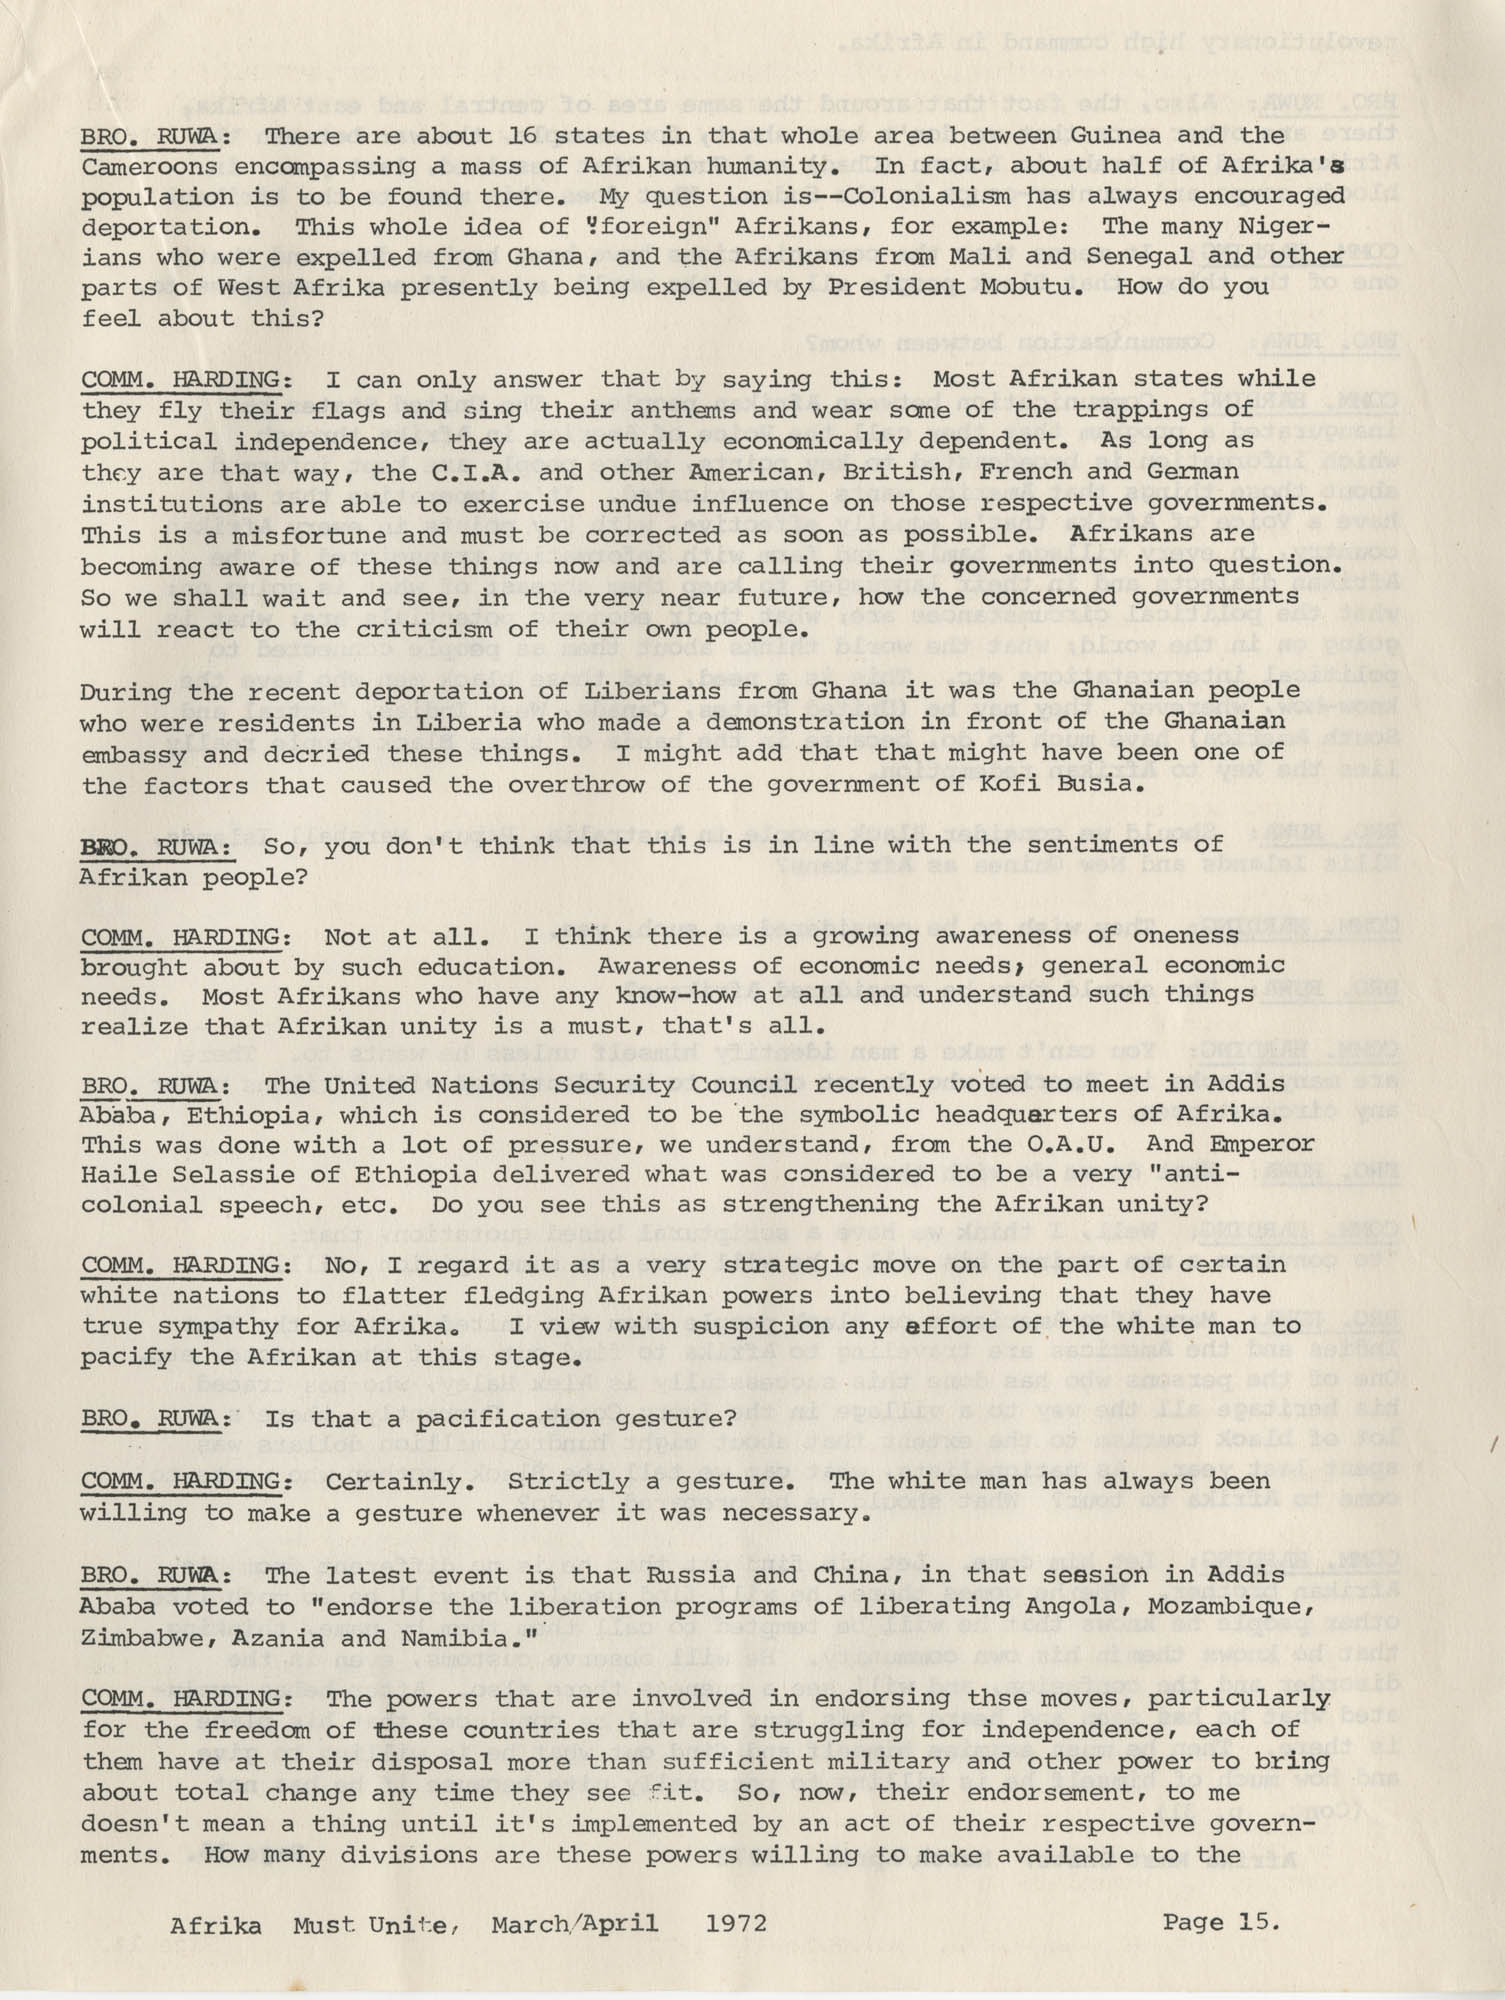 Afrika Must Unite, Vol. 1, No. 4, Page 15